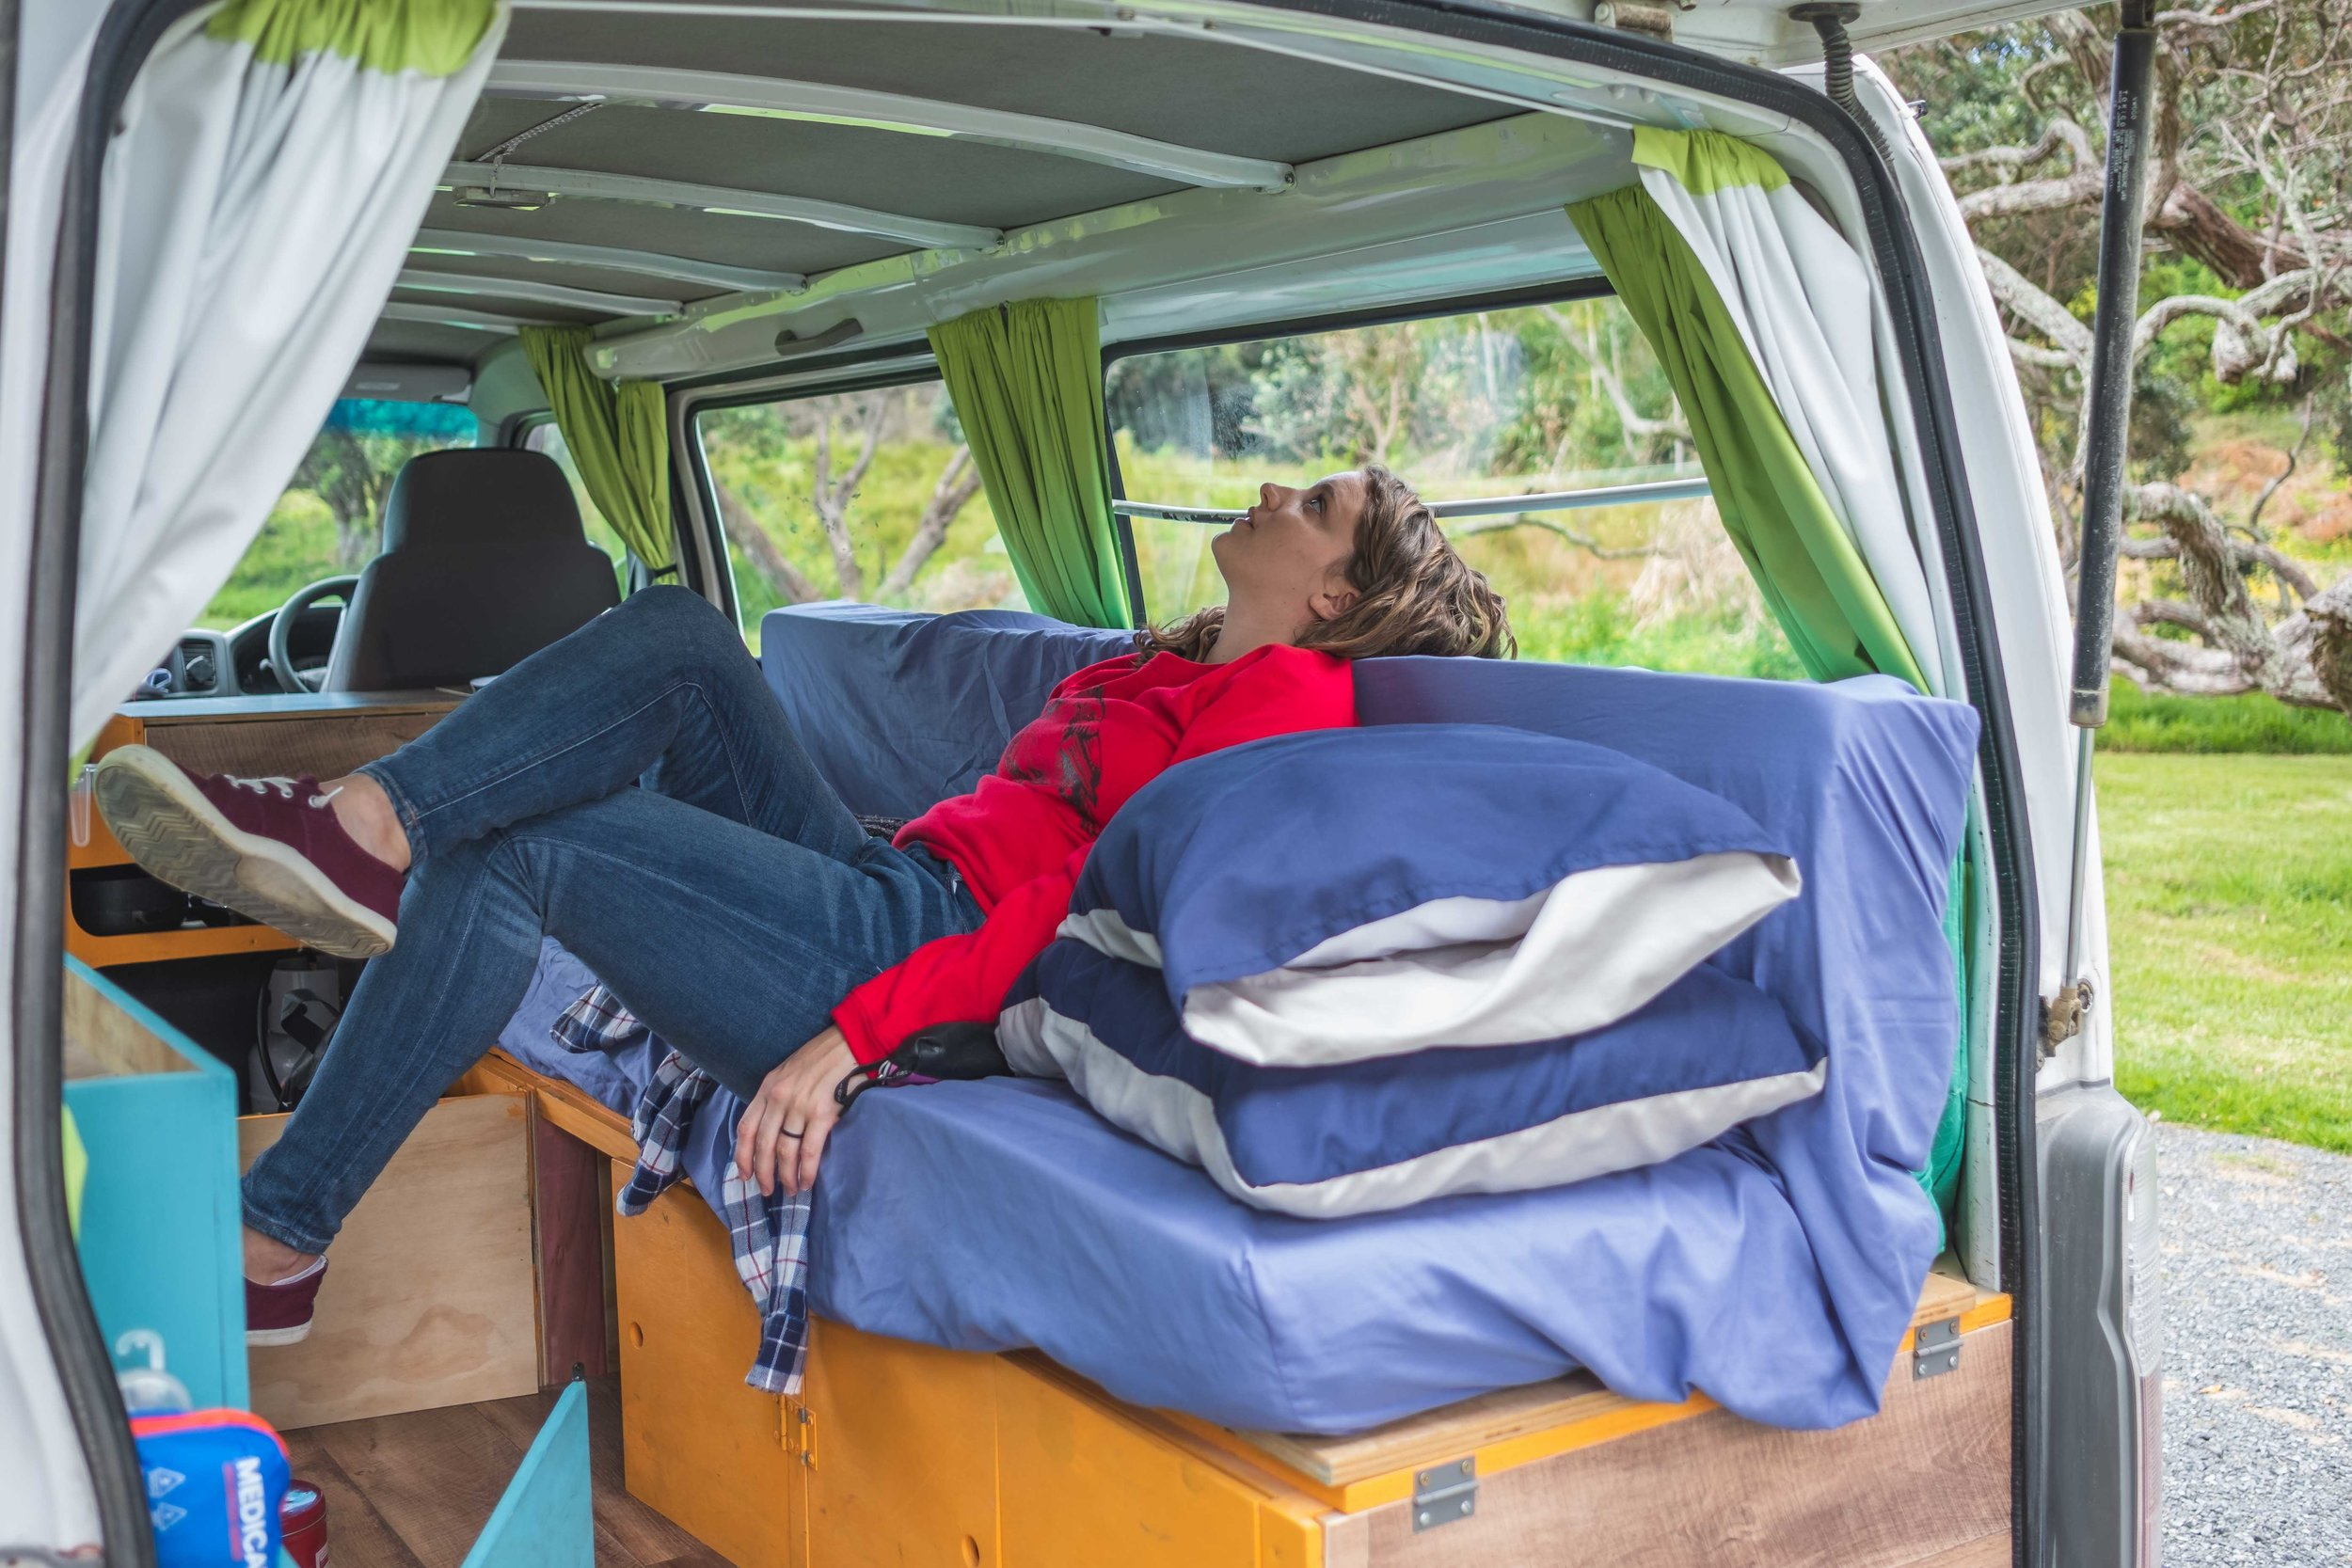 Me just laying around in Vandalf.